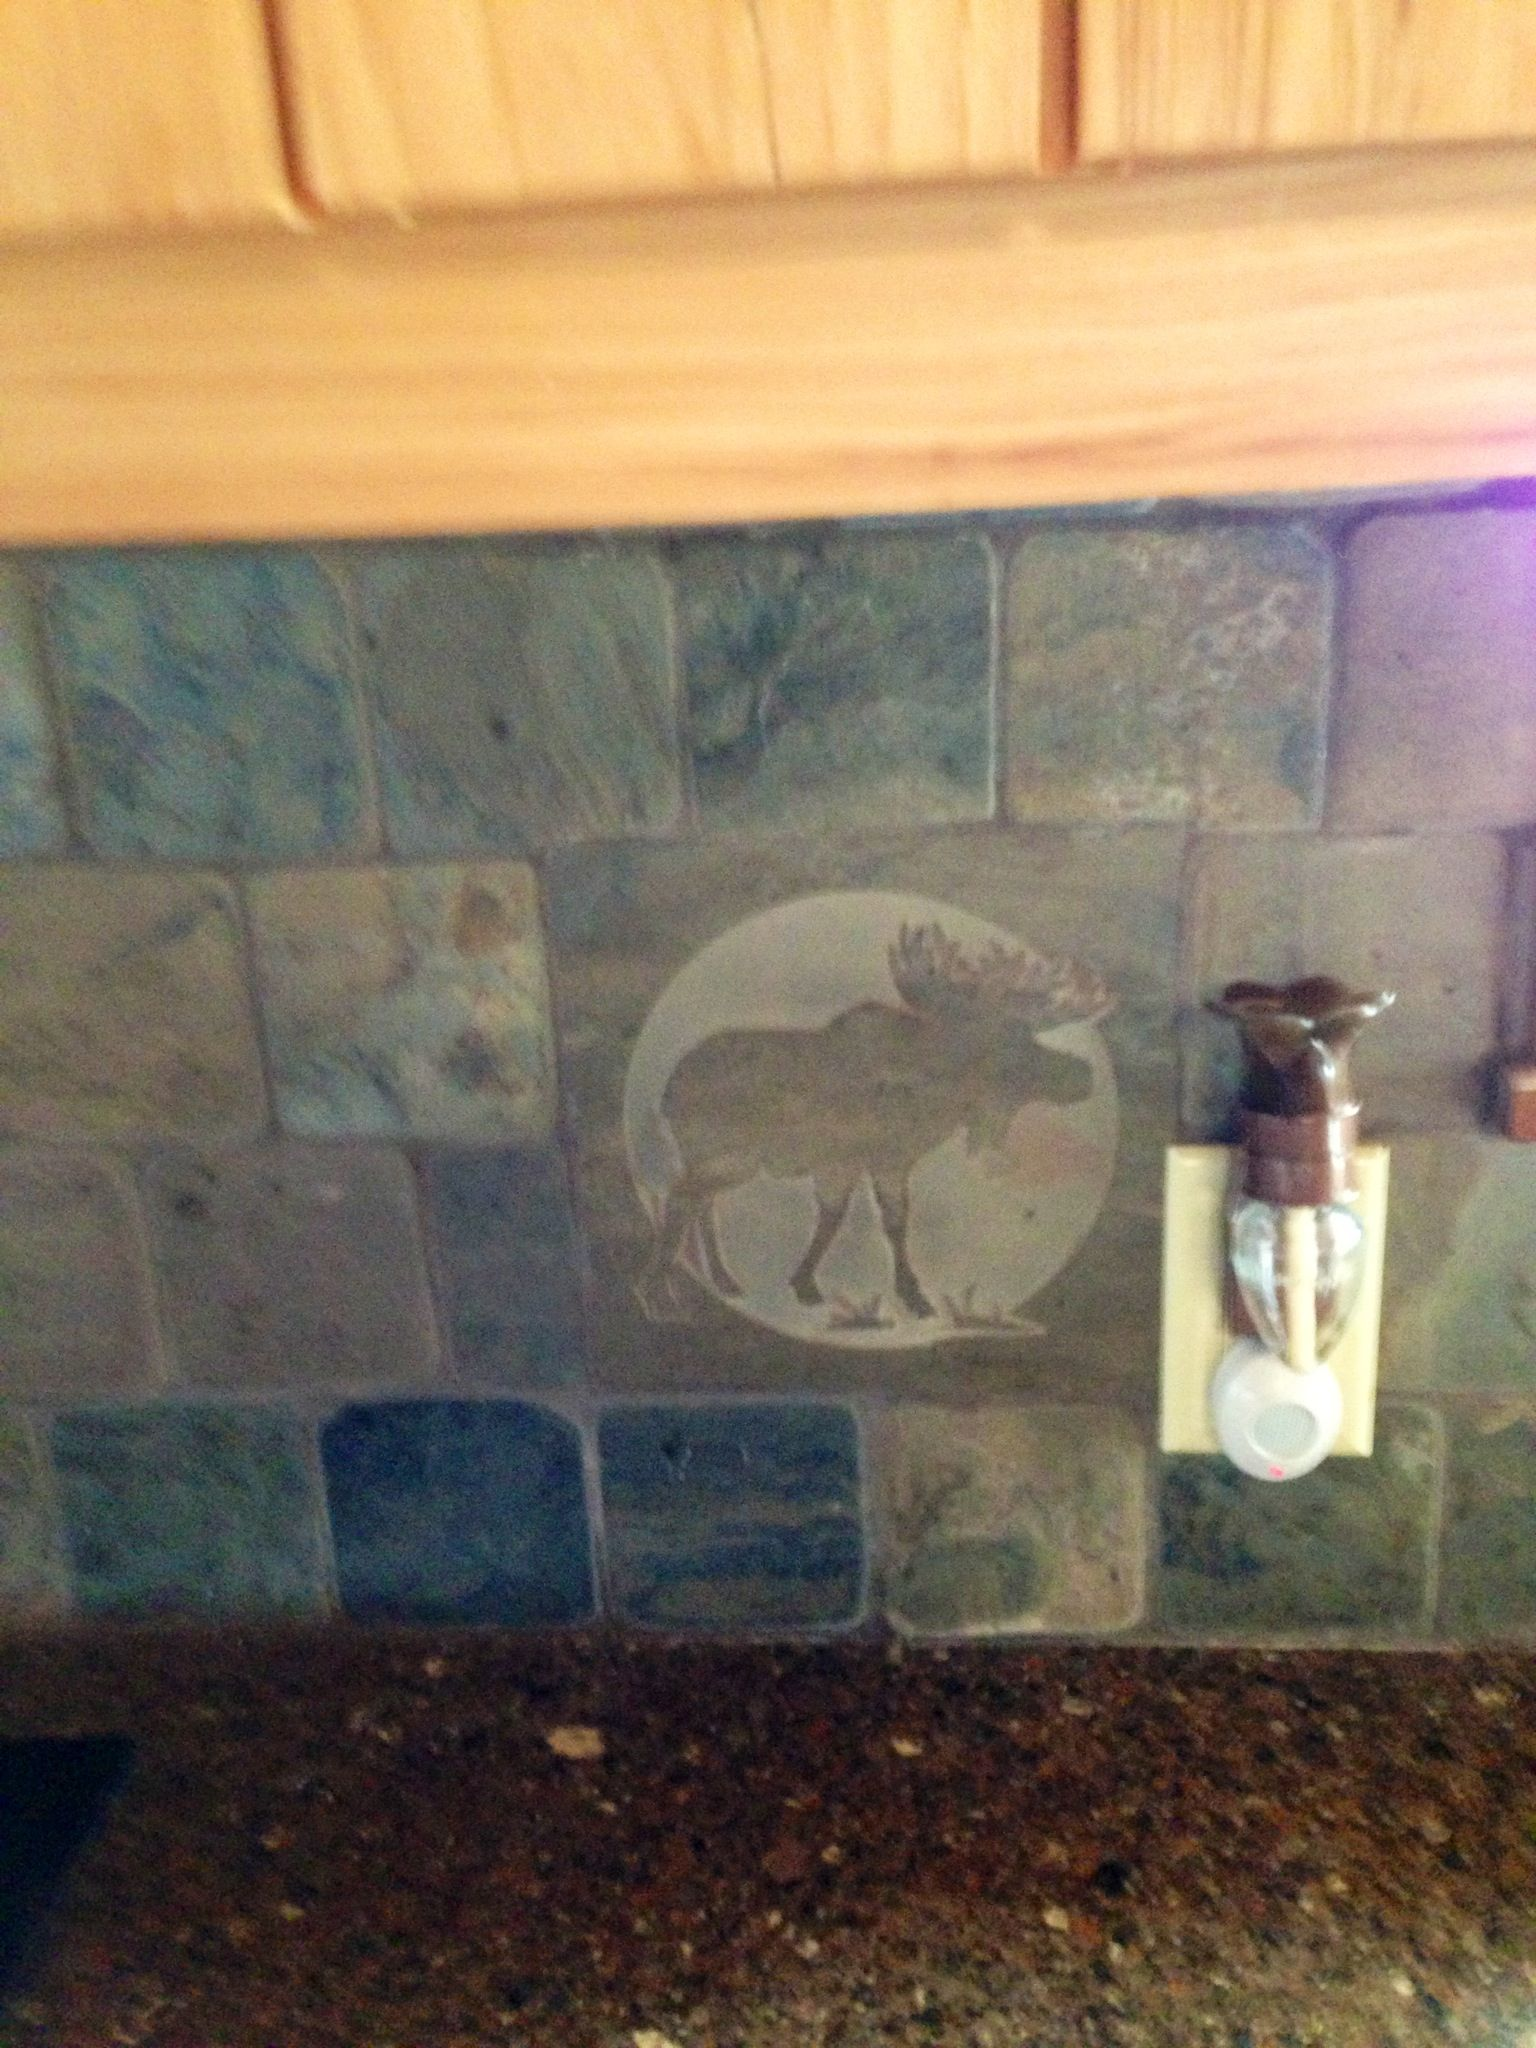 The Tile Backsplash In The Kitchen At Our Cabin It S Got